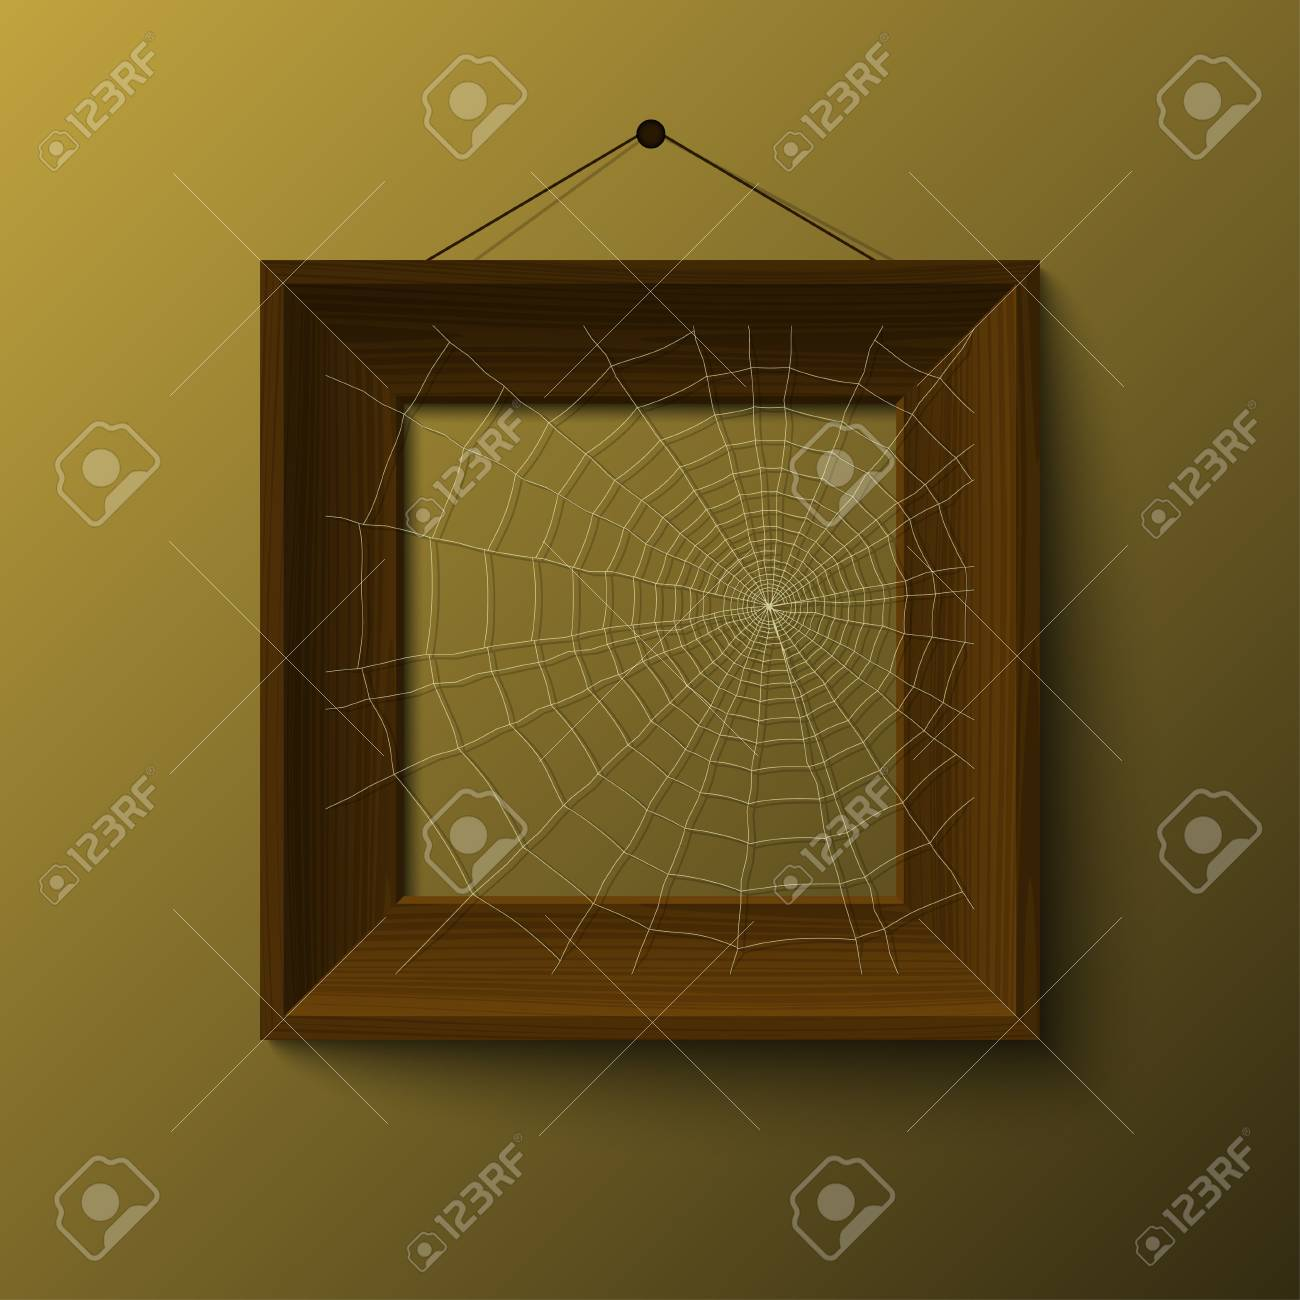 realistick woowen frame with spiderweb vector Stock Vector - 17804693